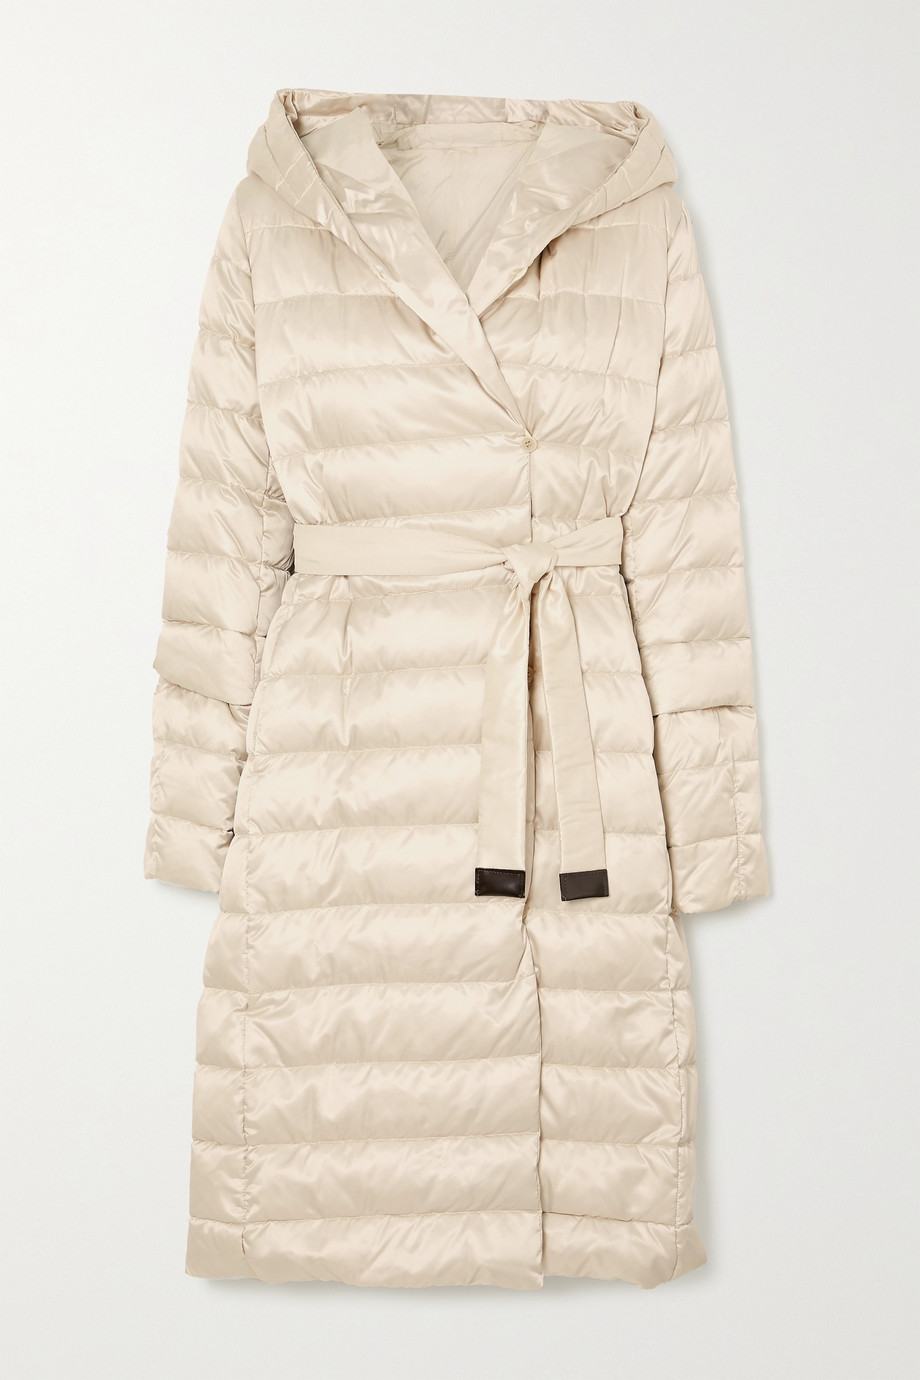 MAX MARA The Cube belted hooded quilted shell down coat